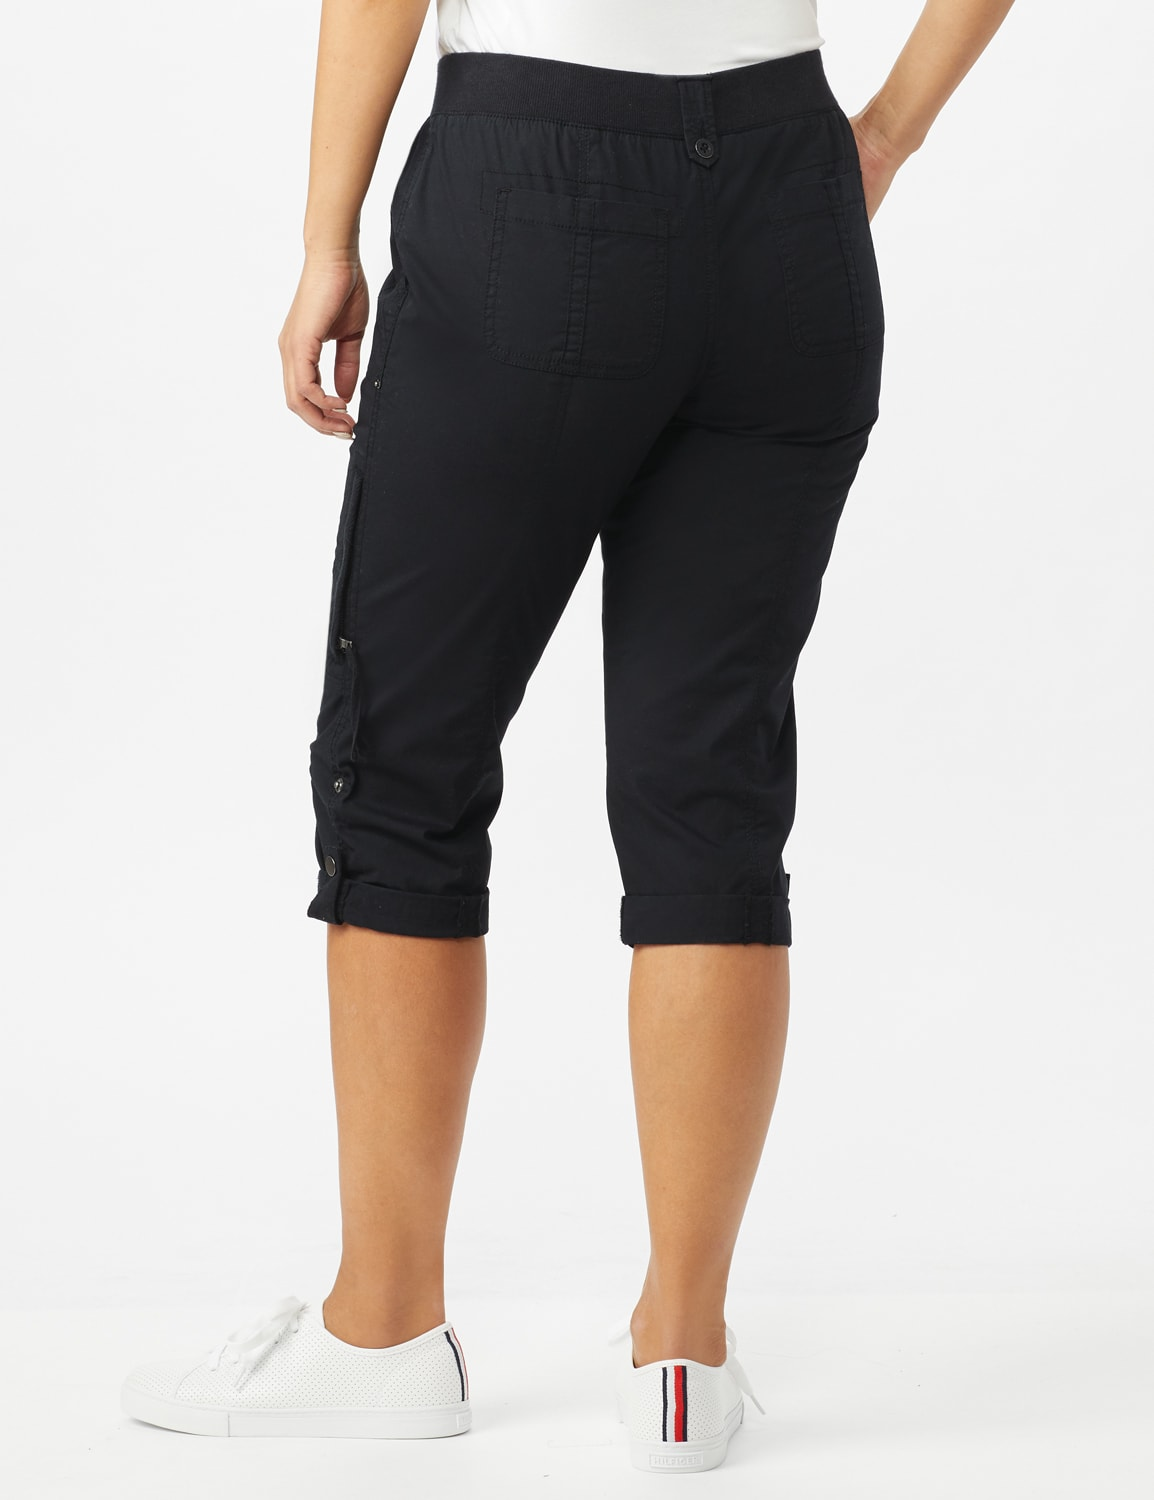 Utility Knit Waist Pull on Capri Pants - Ebony Black - Back